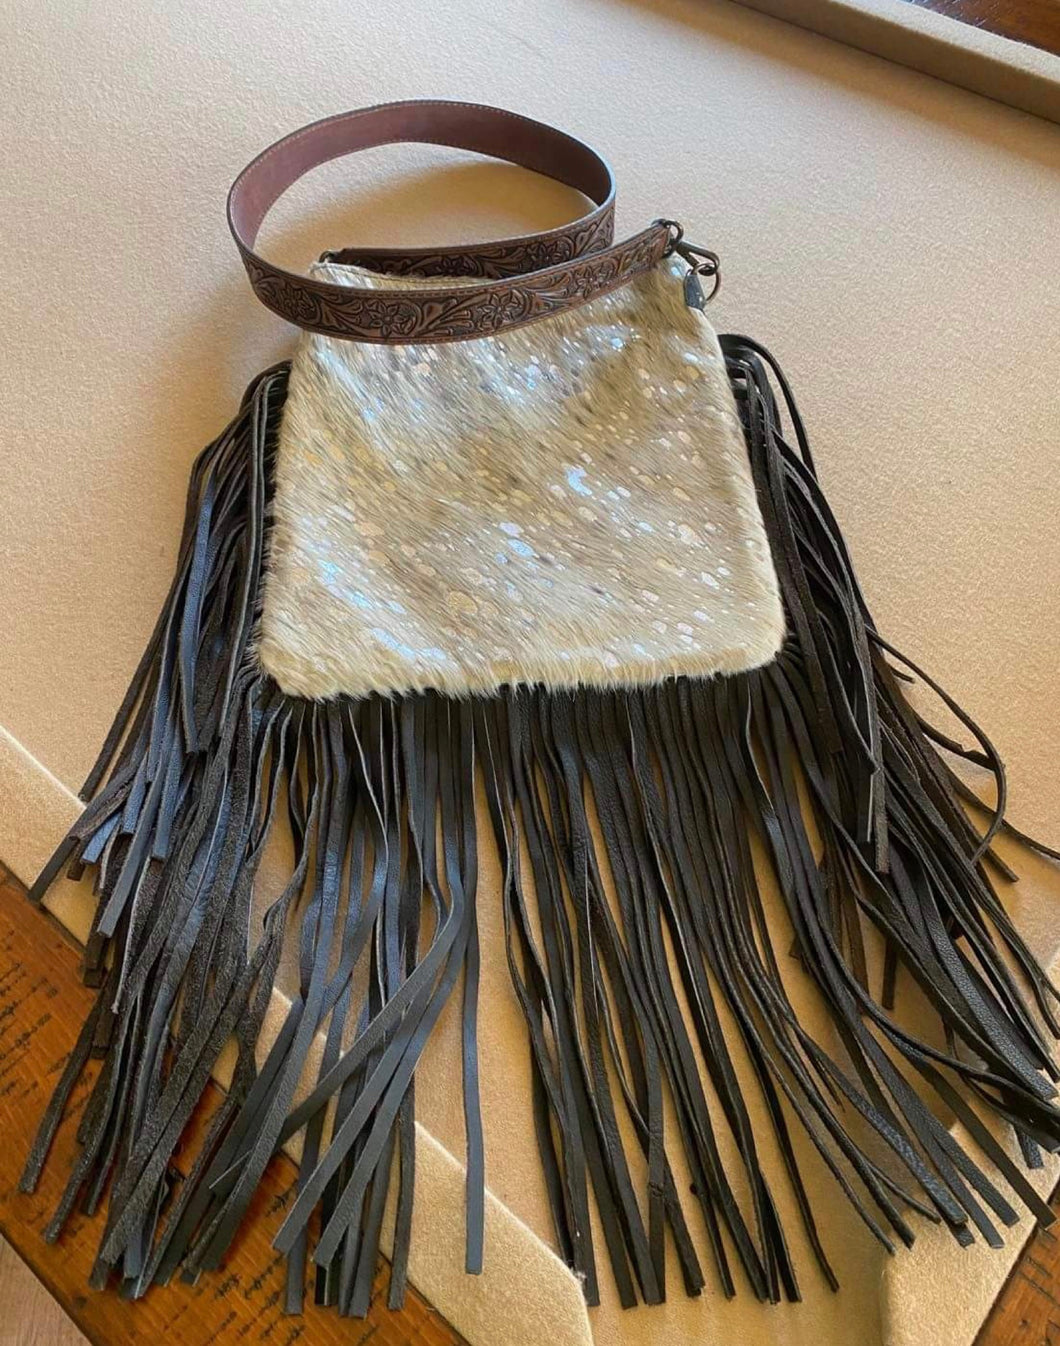 All Leather Silver and White Acid Washed Handbag with Fringe